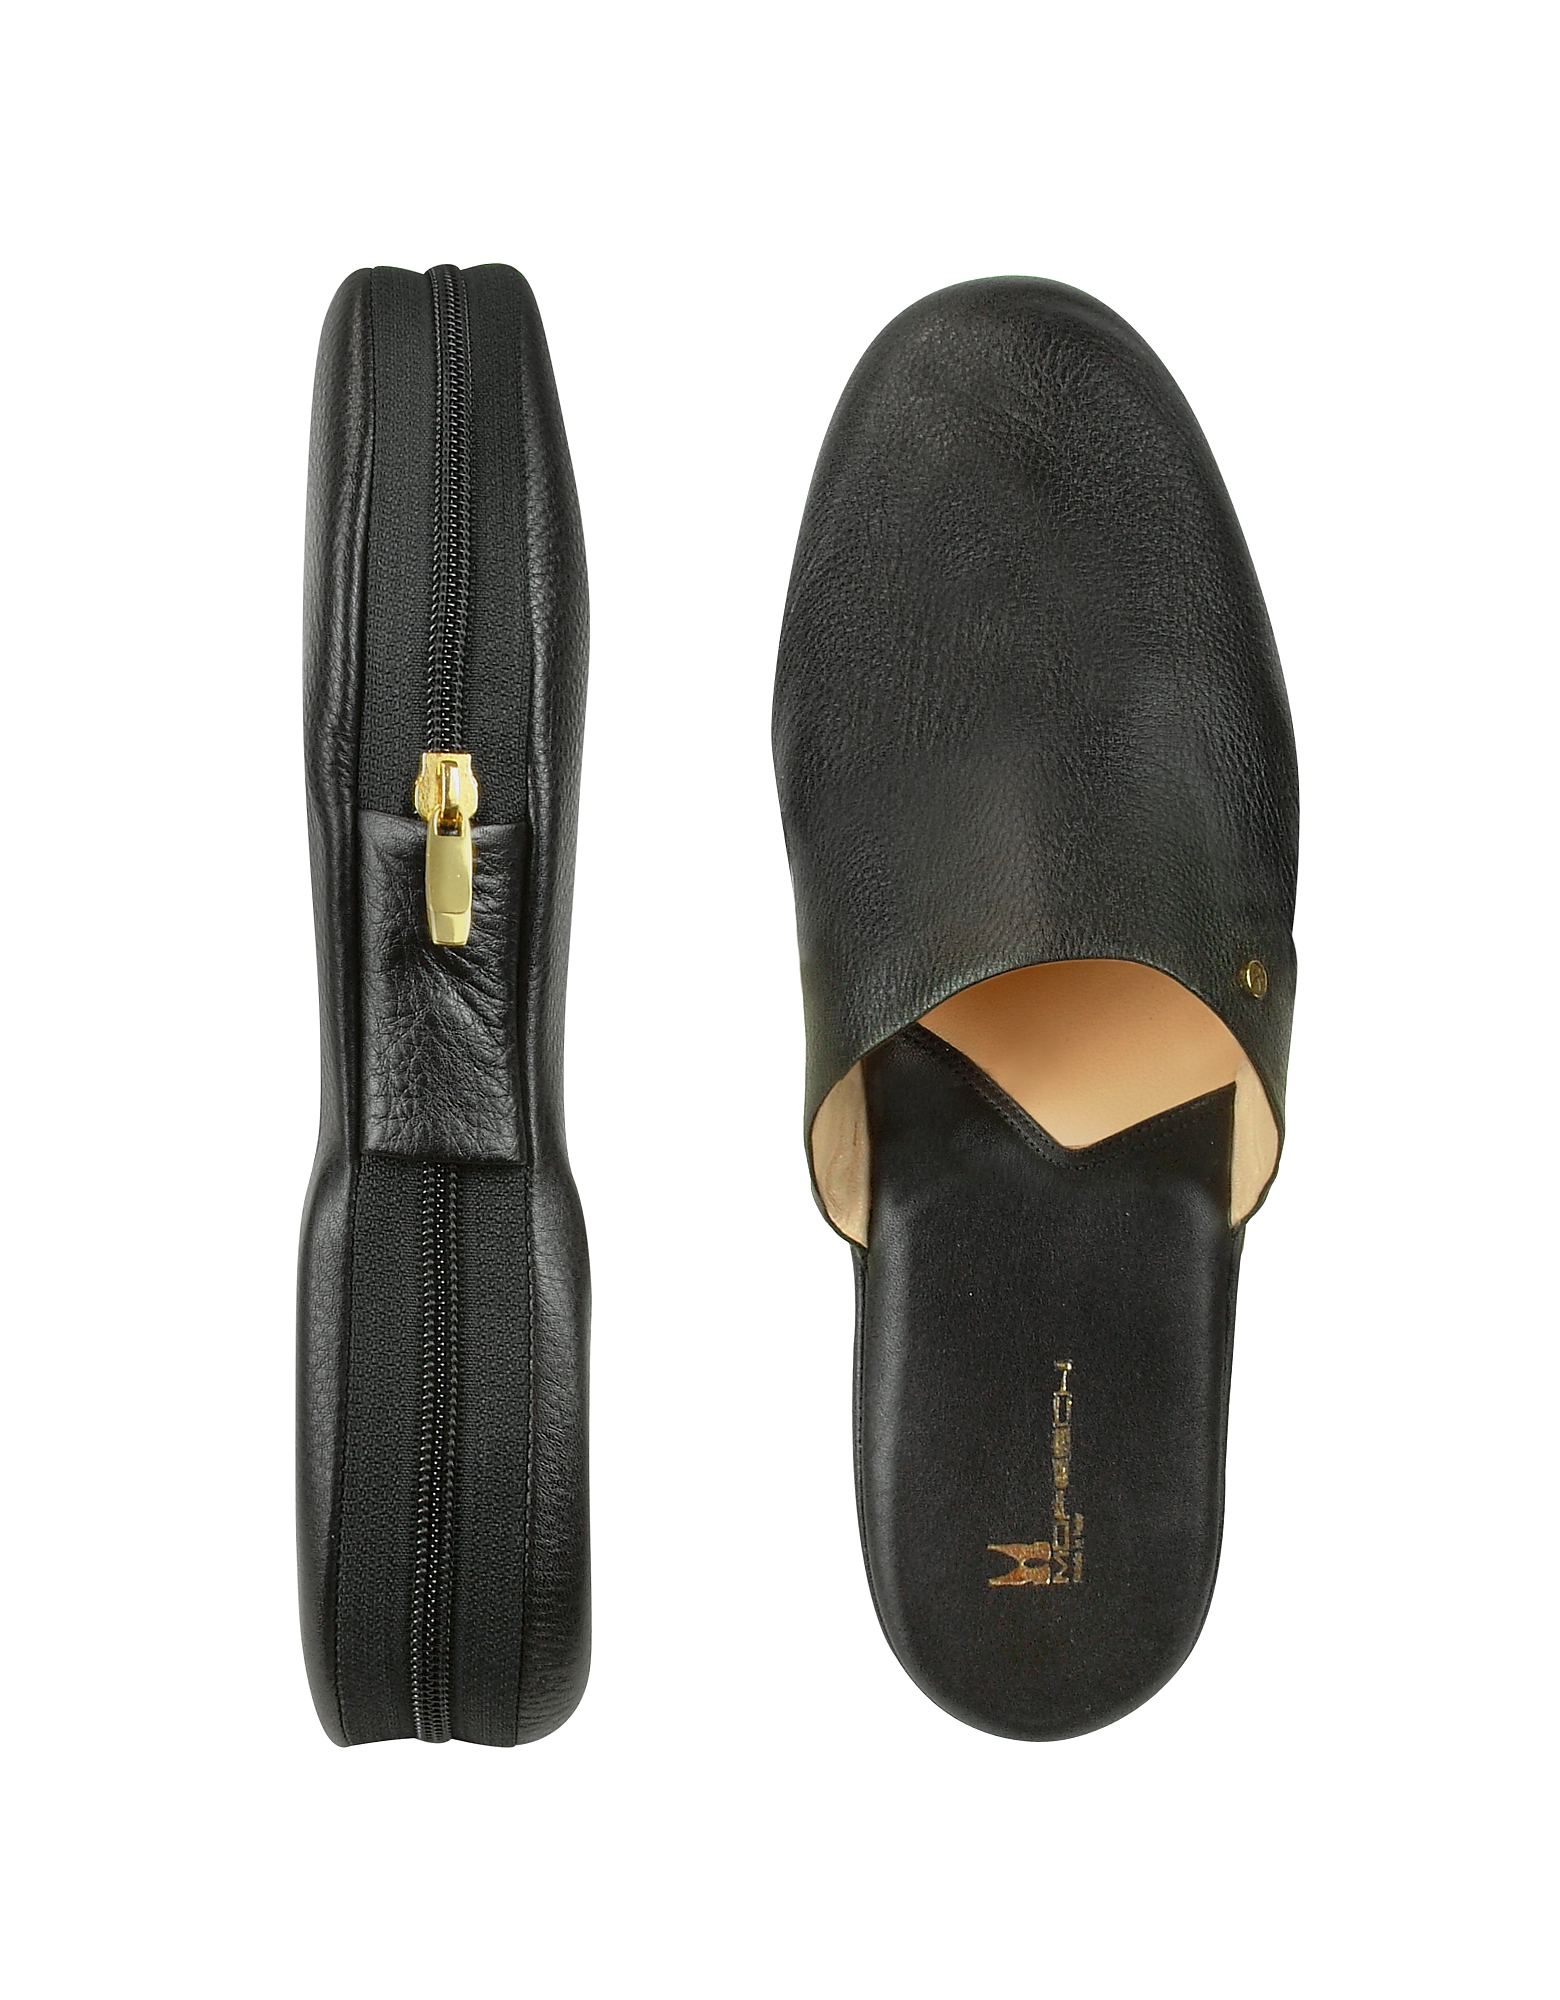 Moreschi Shoes, Amerigo - Black Calf Leather Travel Slippers w/Case